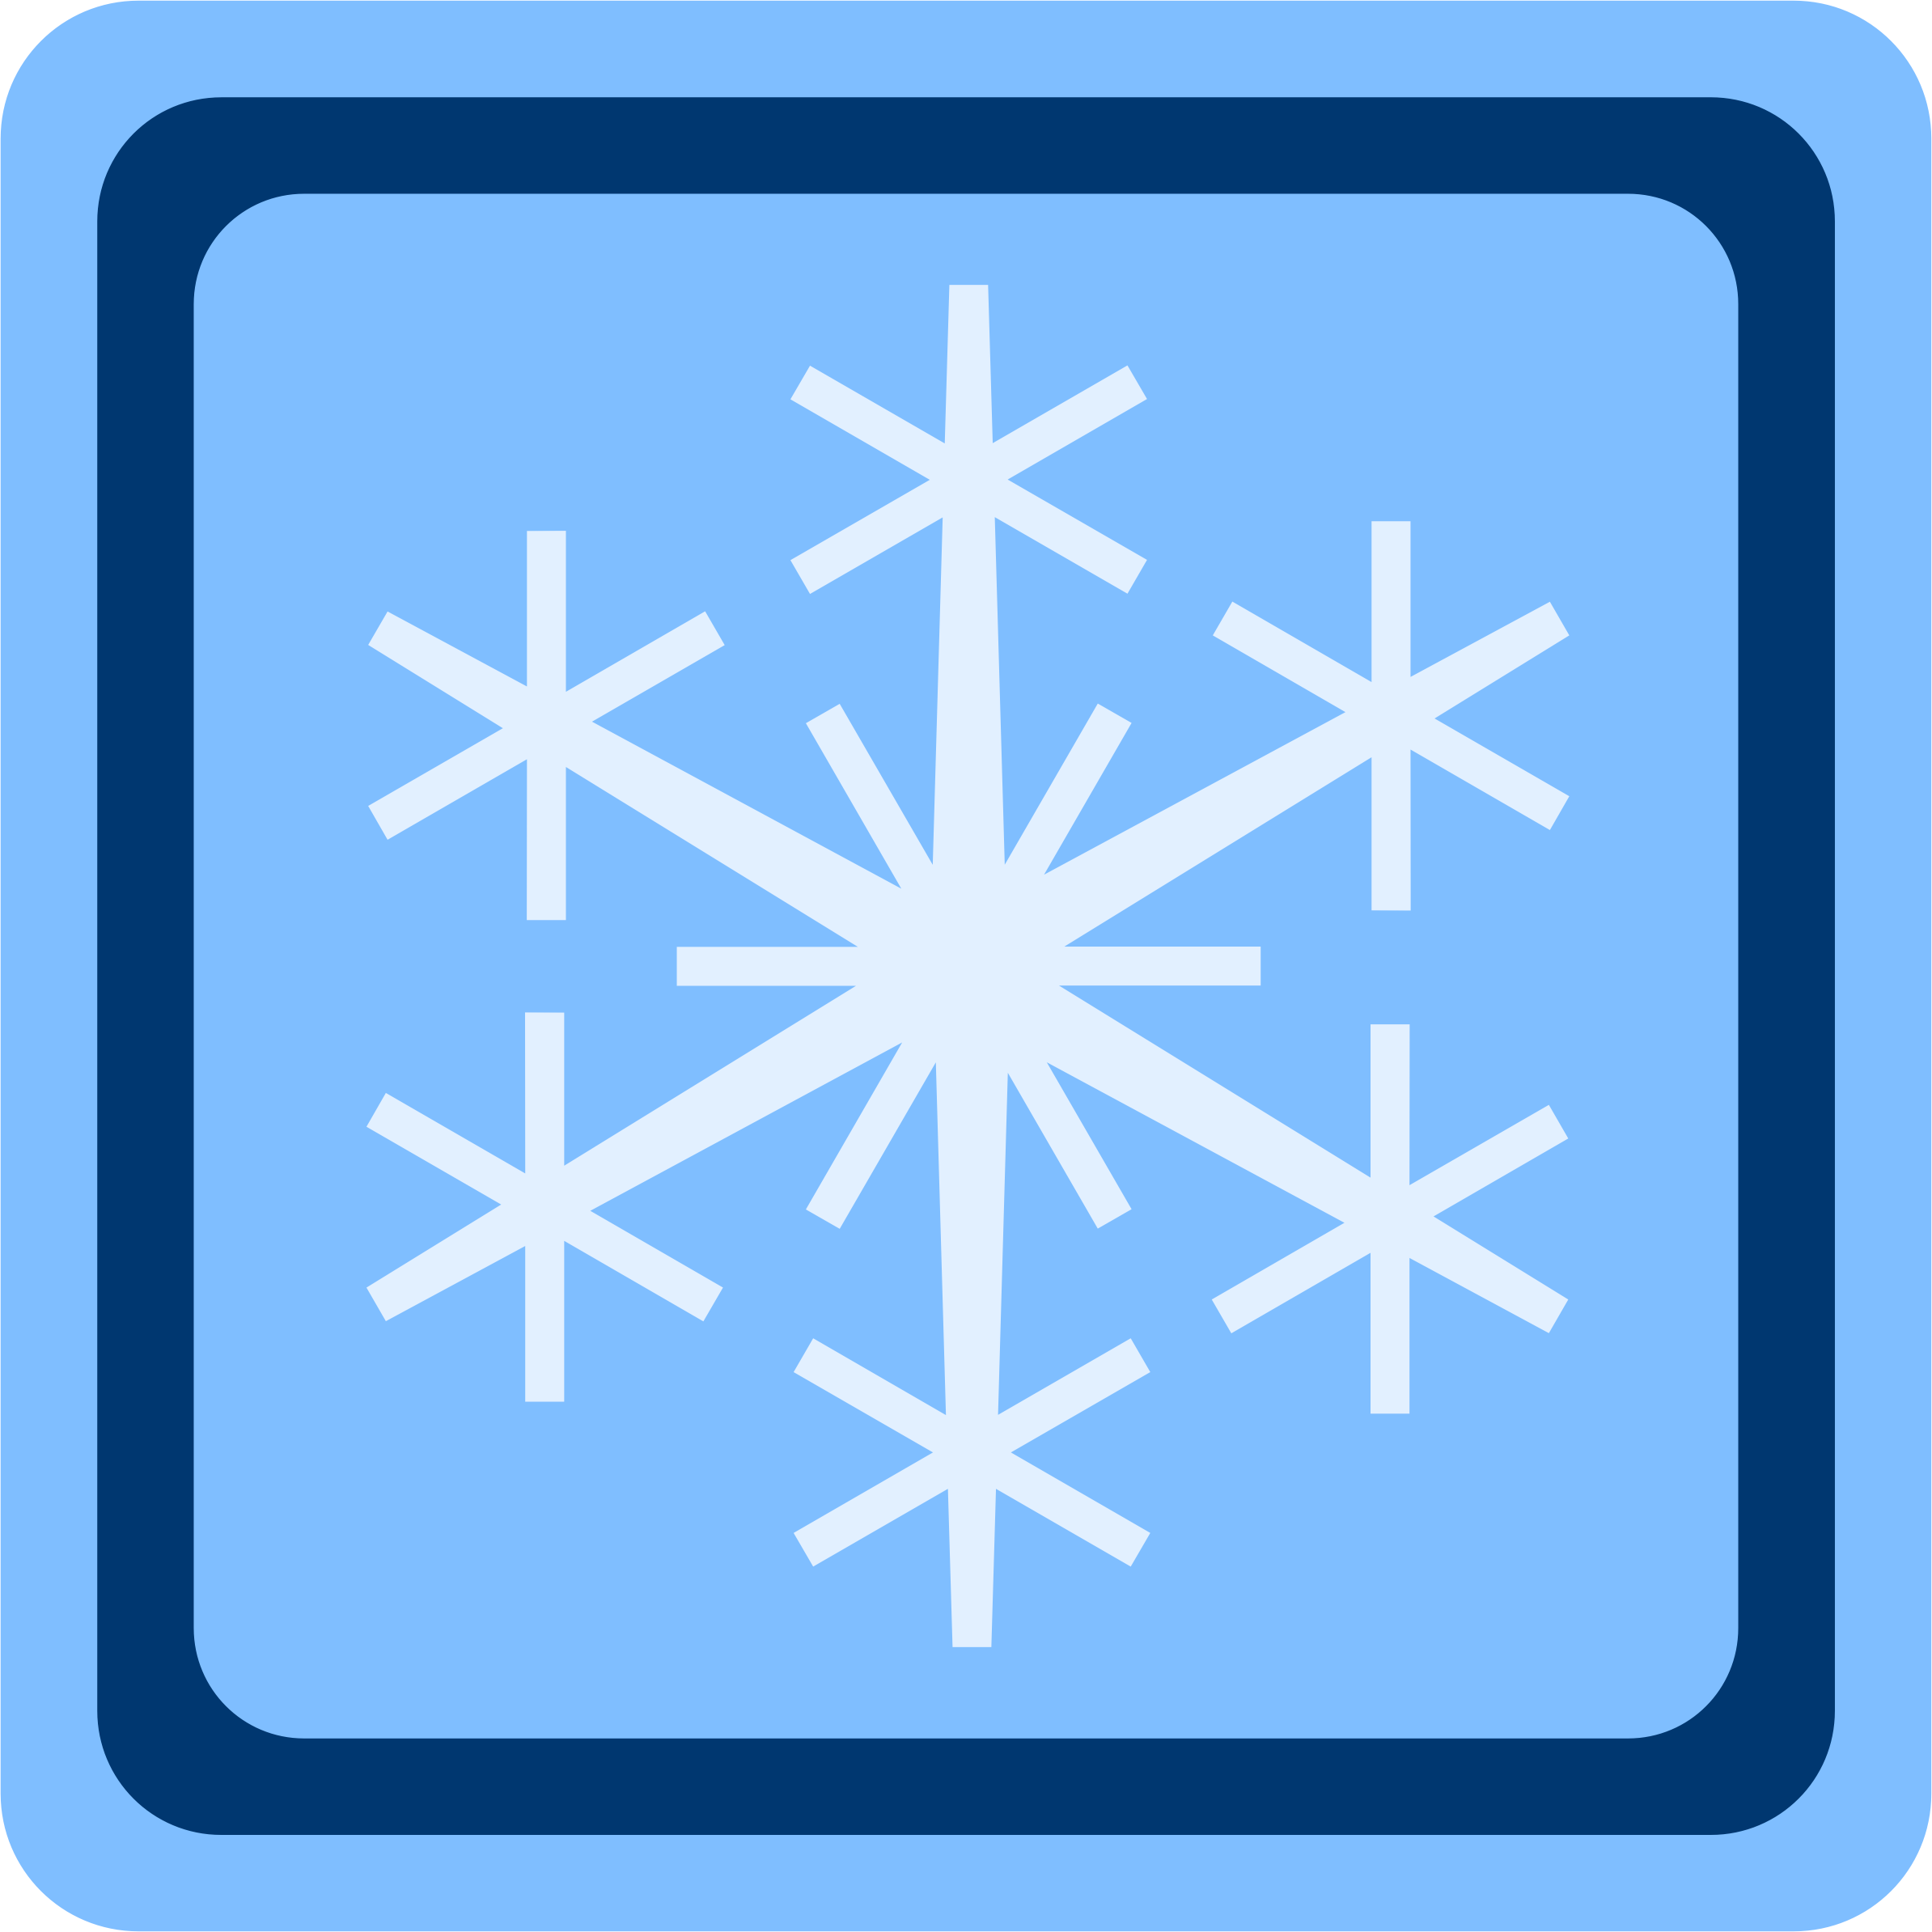 Snow Symbol Vector Clipart Image Free Stock Photo Public Domain